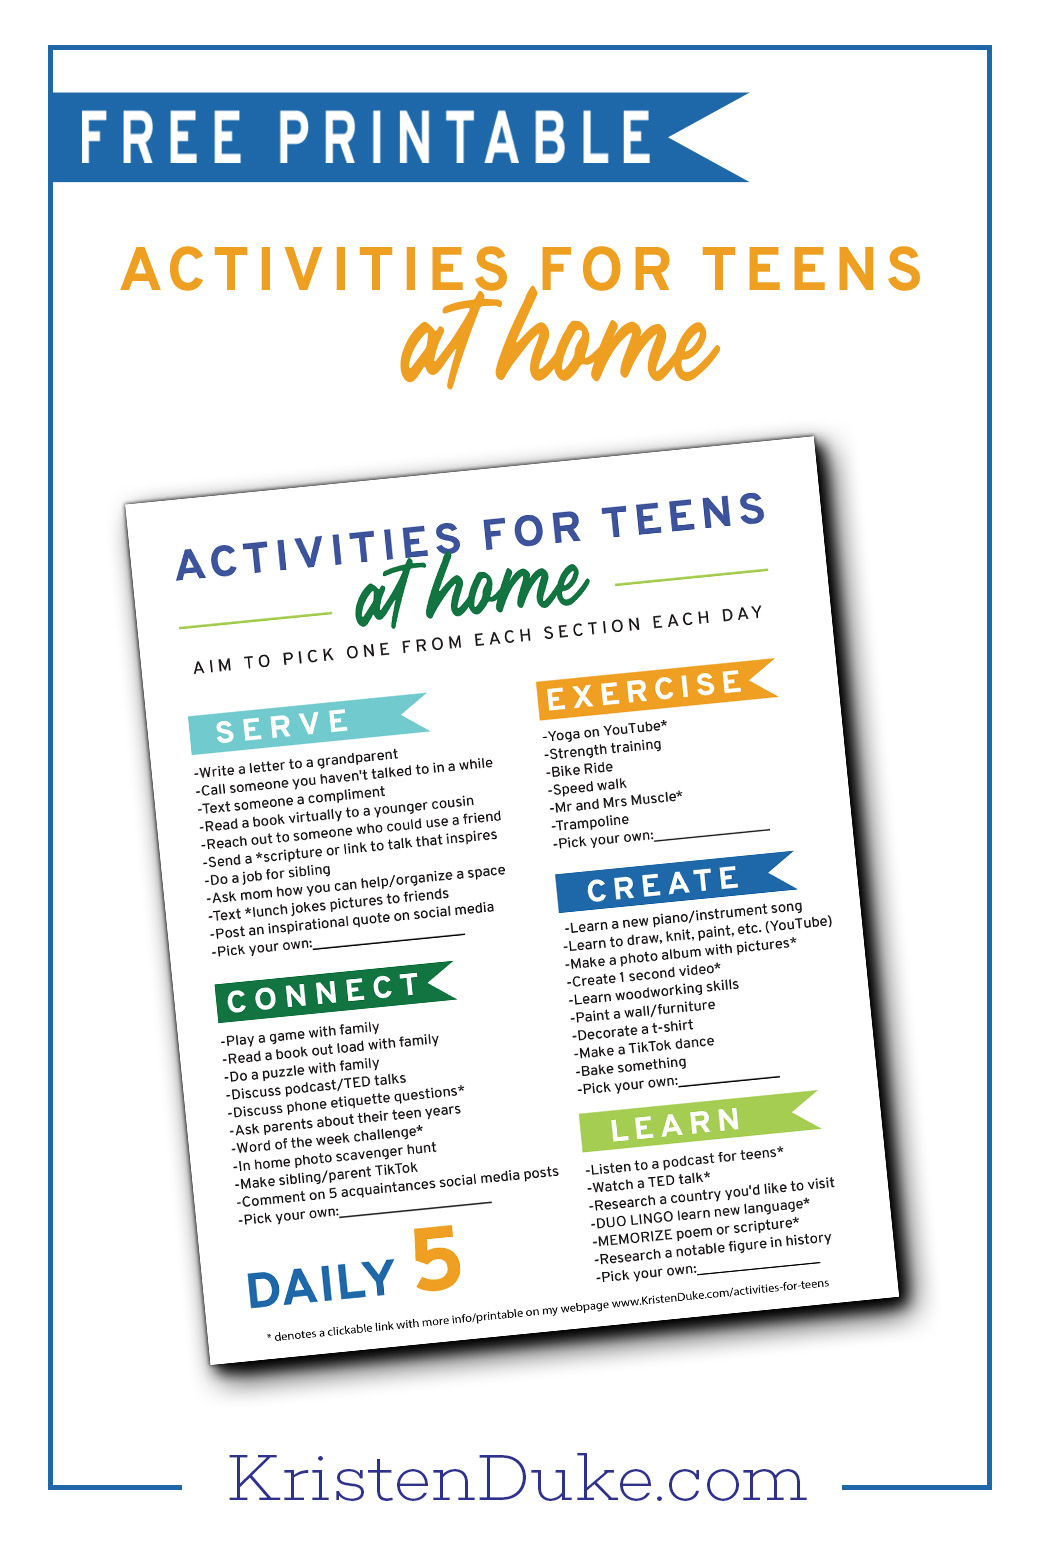 Activities for Teens at Home